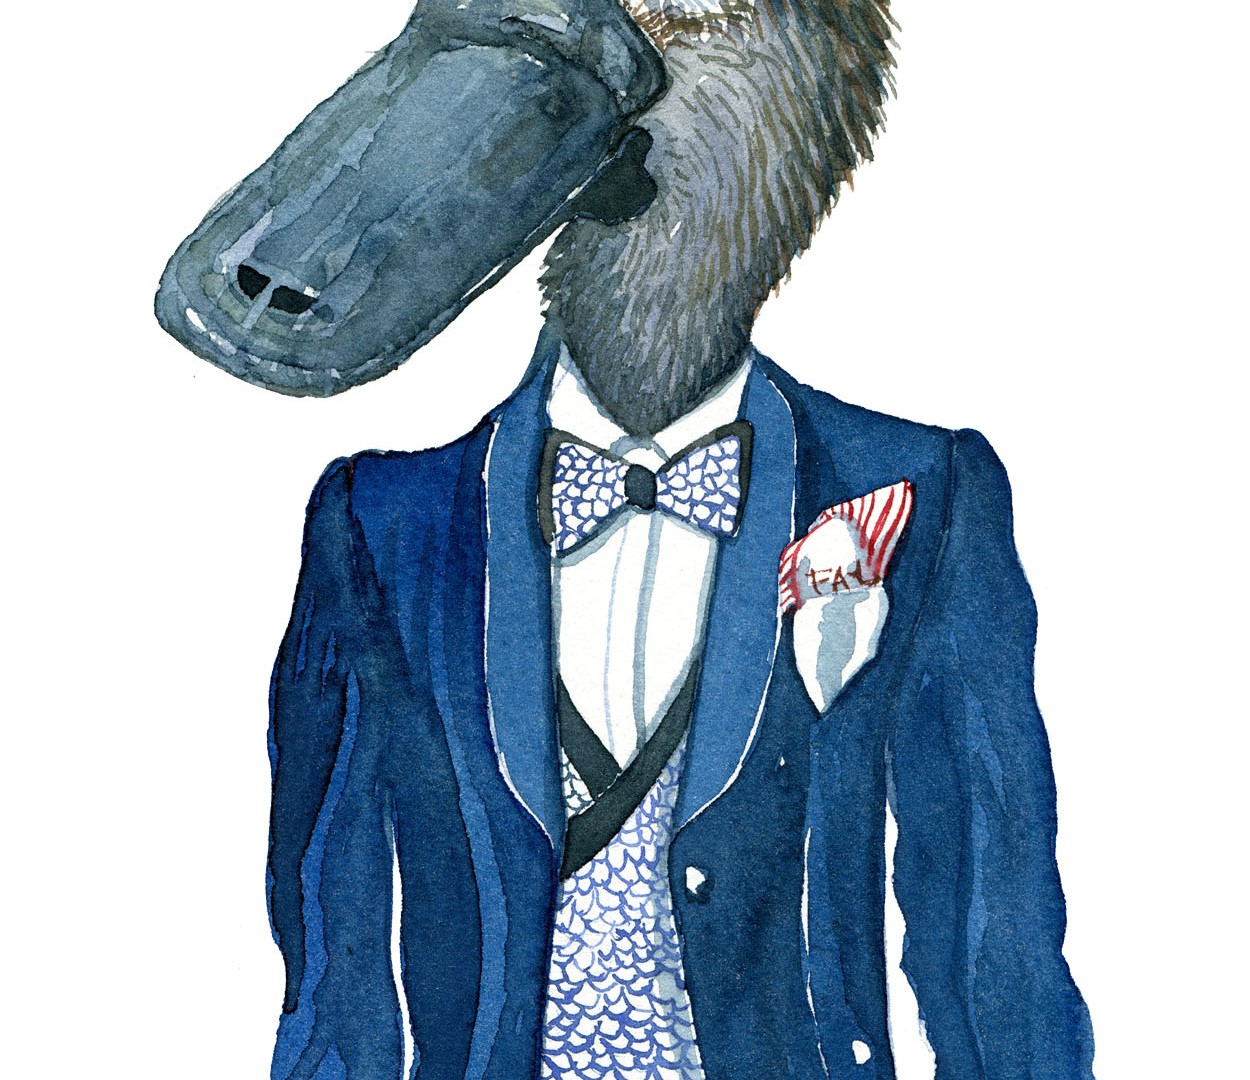 Platypus man watercolor of a platypus in fine suit. art by Frits Ahlefeldt